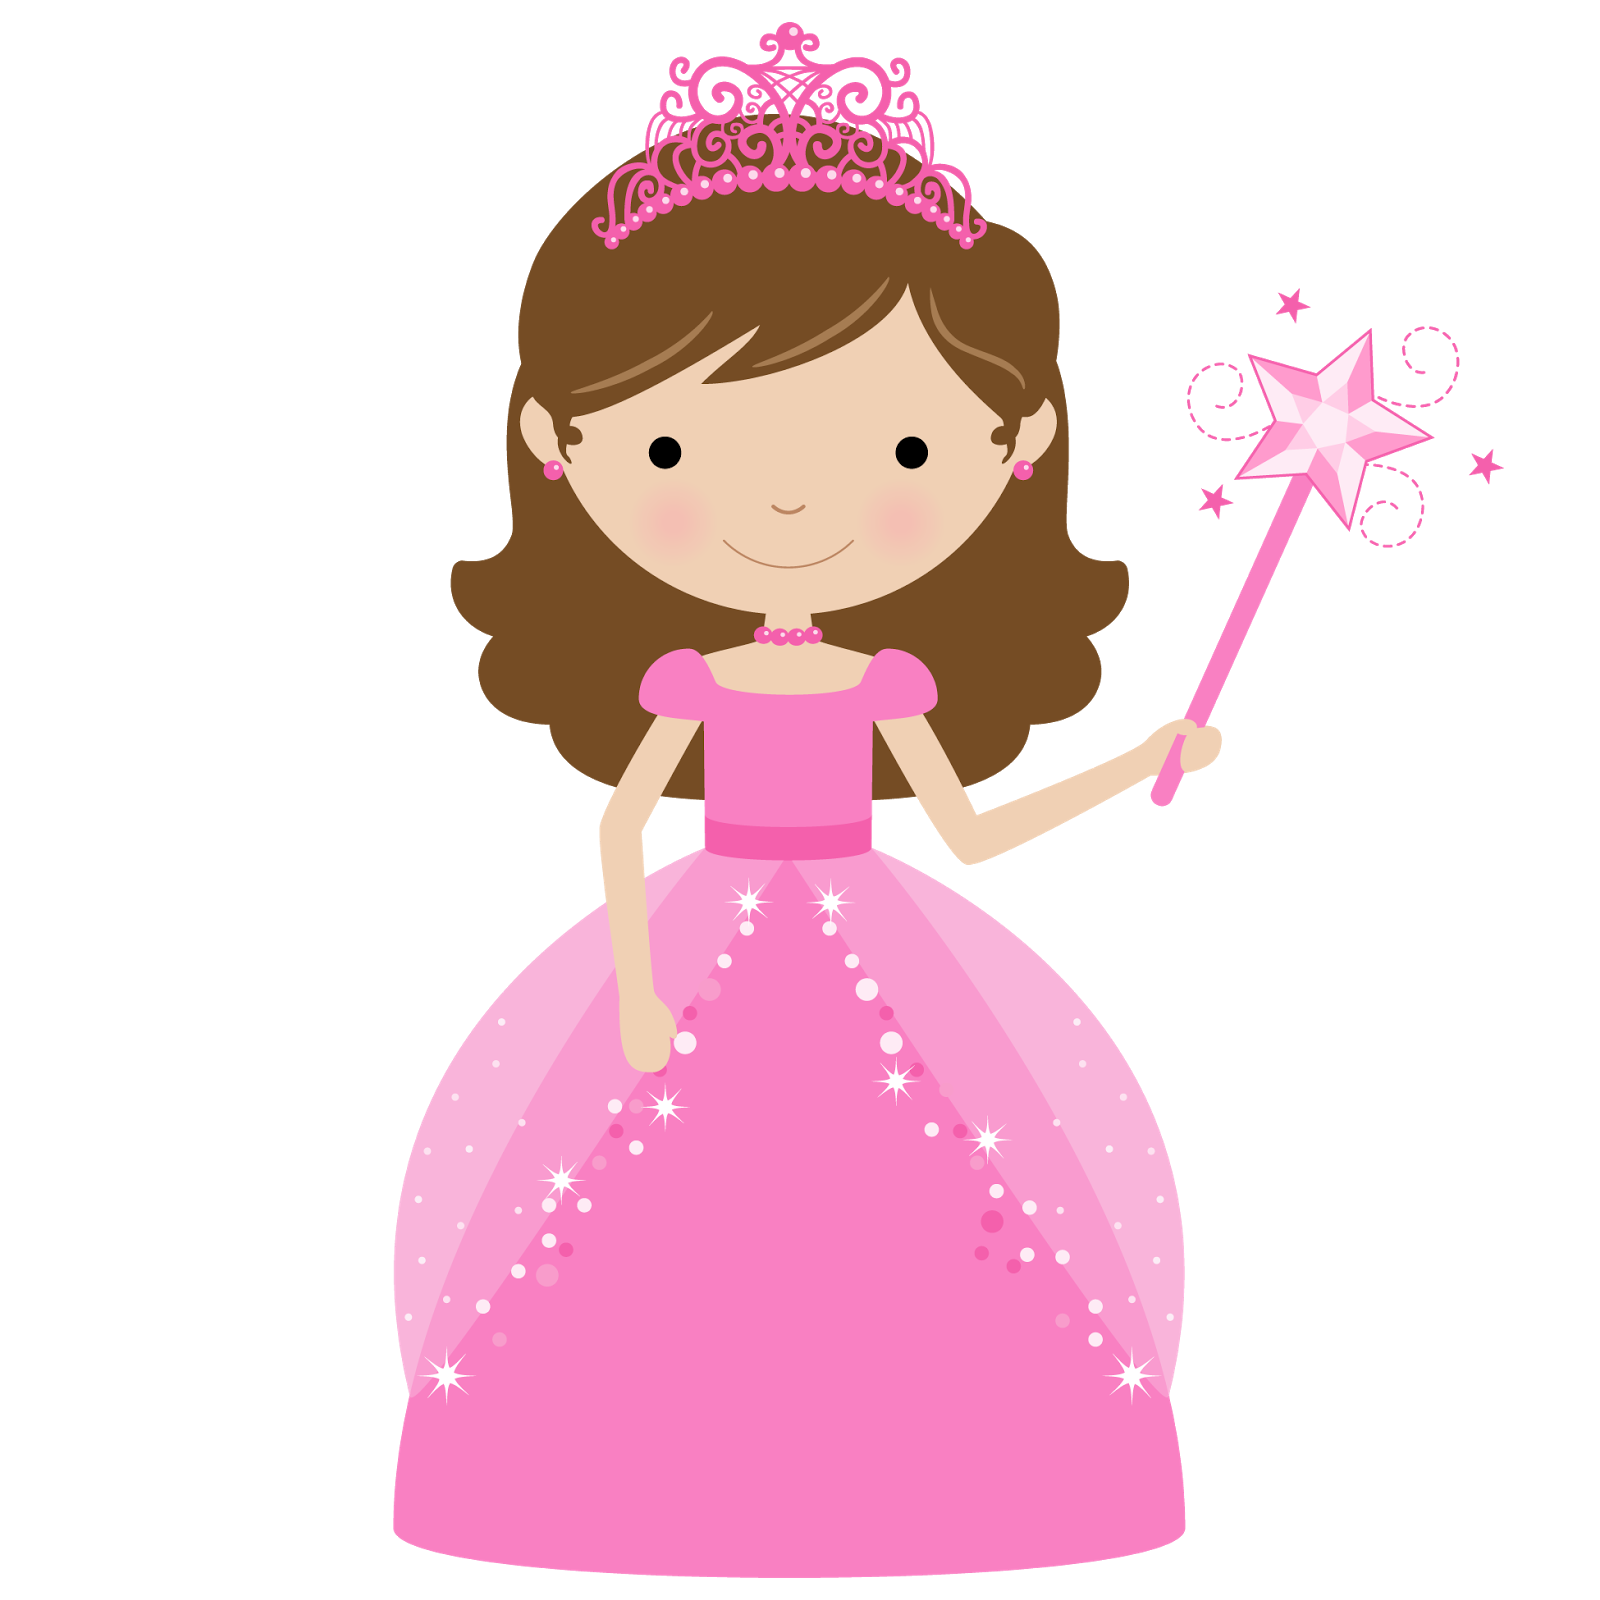 Princess and Cupcake Clipart. - Oh My Fiesta! in english